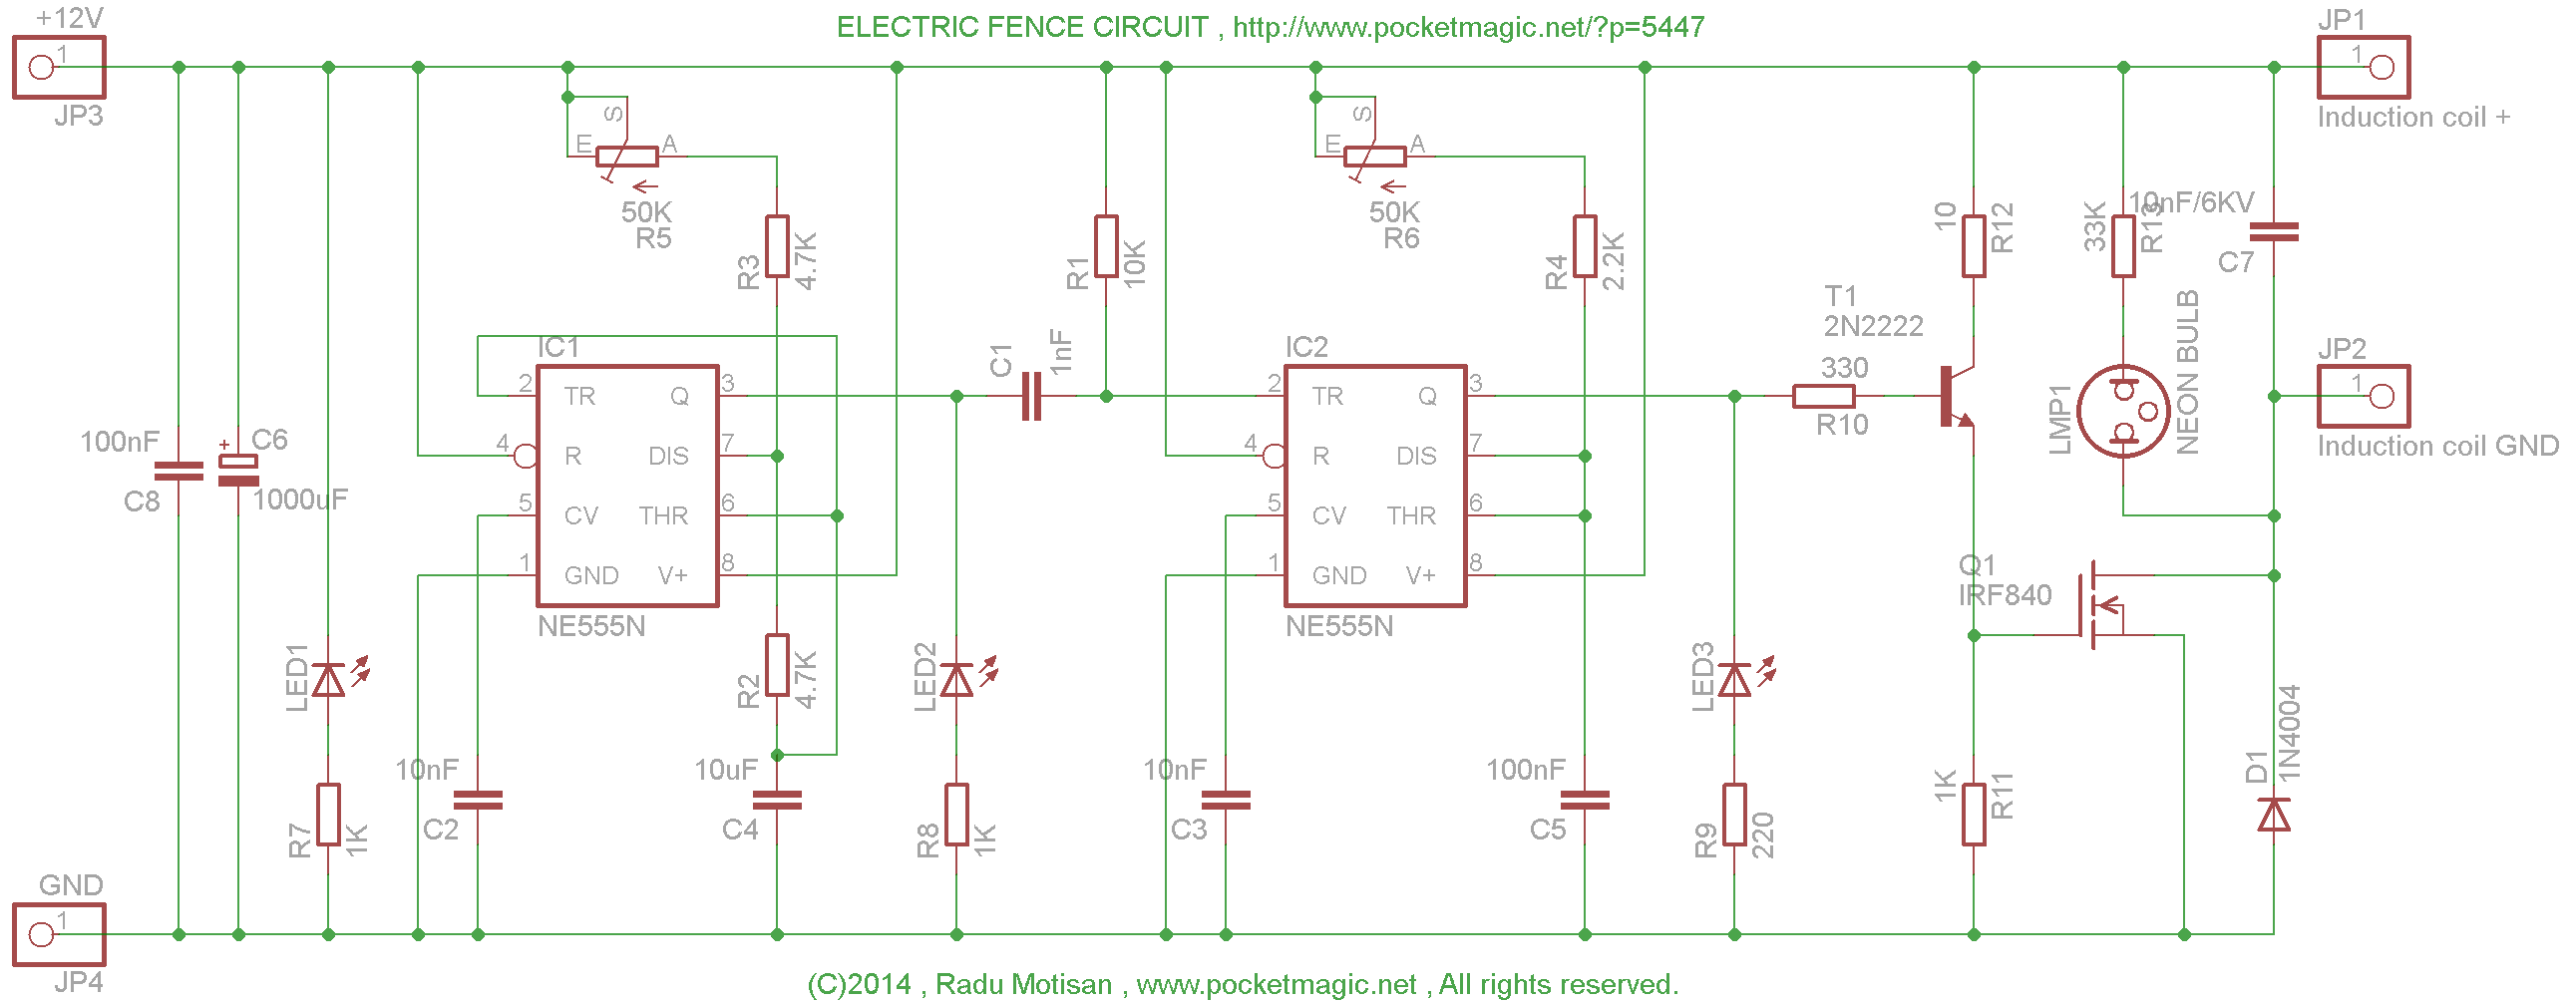 Electric Fence Circuit For Perimeter Protection Pocketmagic Ne555 Projects Induction Coil Driver 555